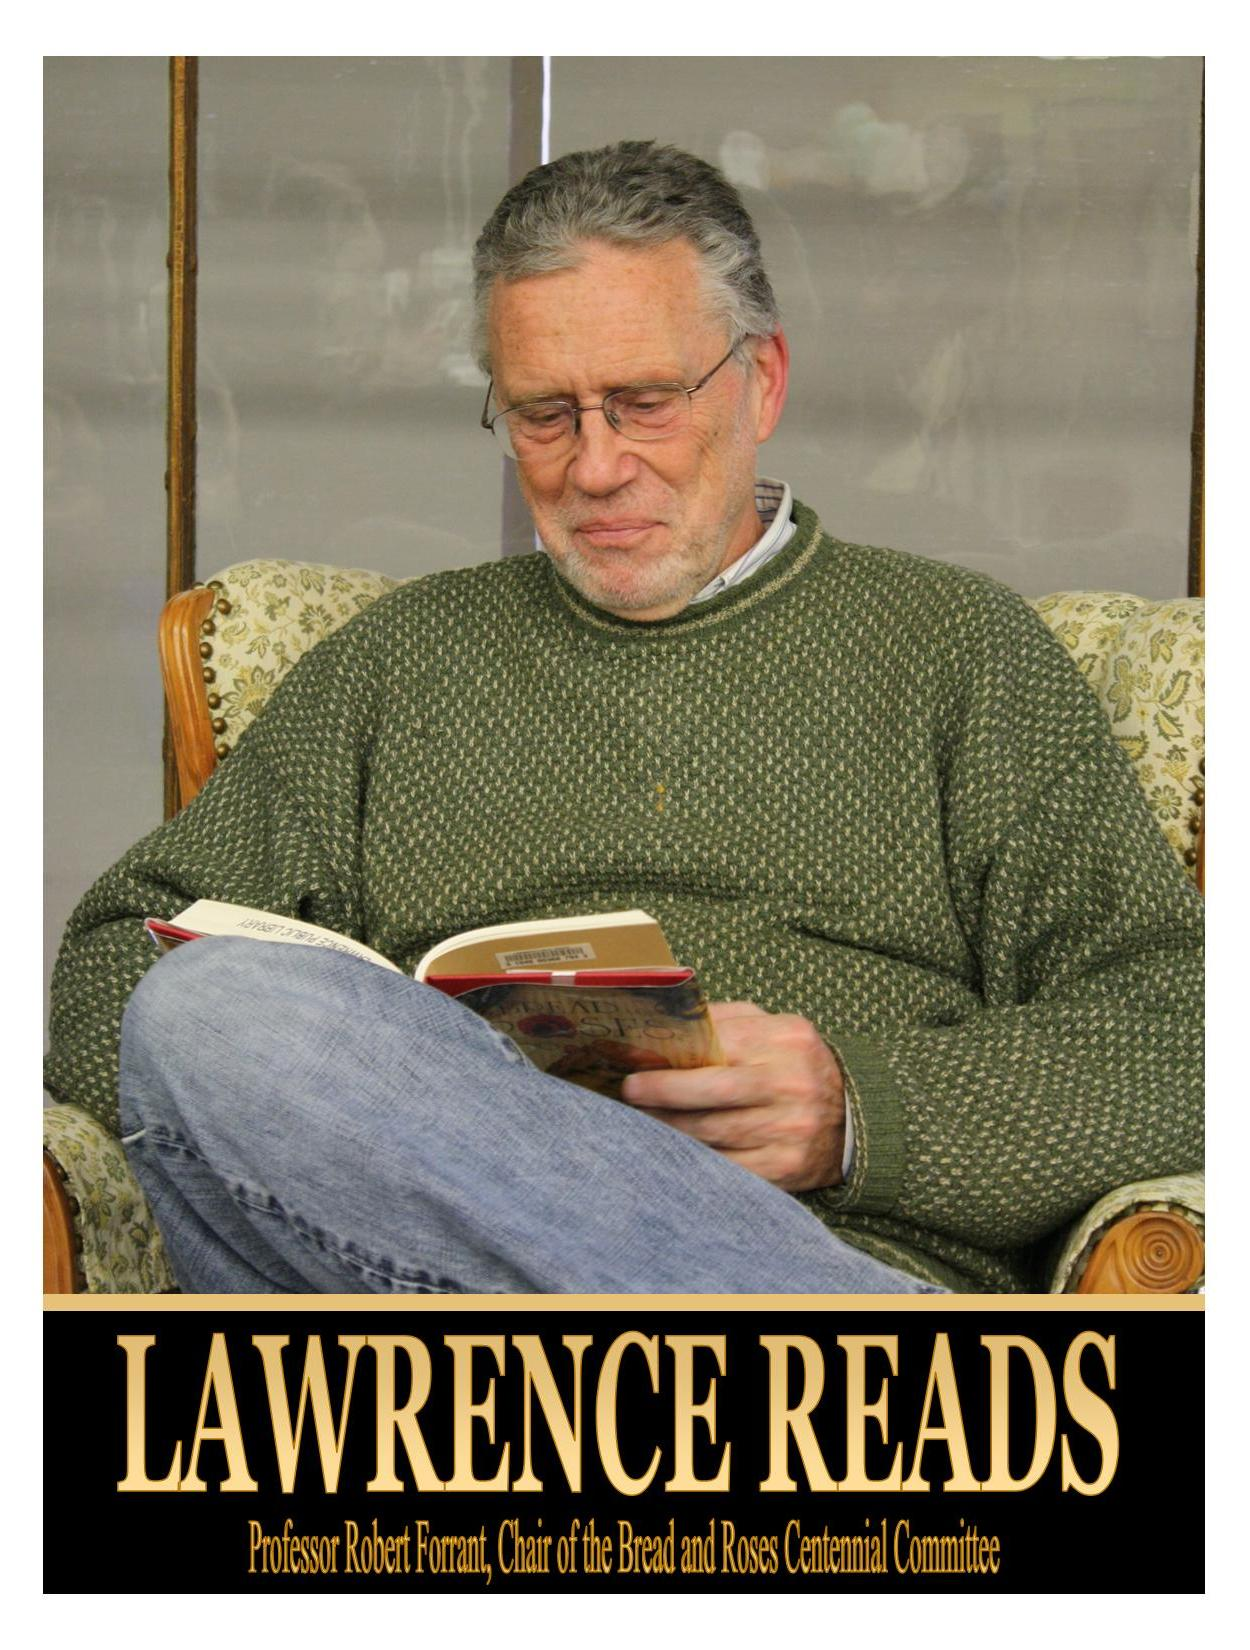 LawrenceReads